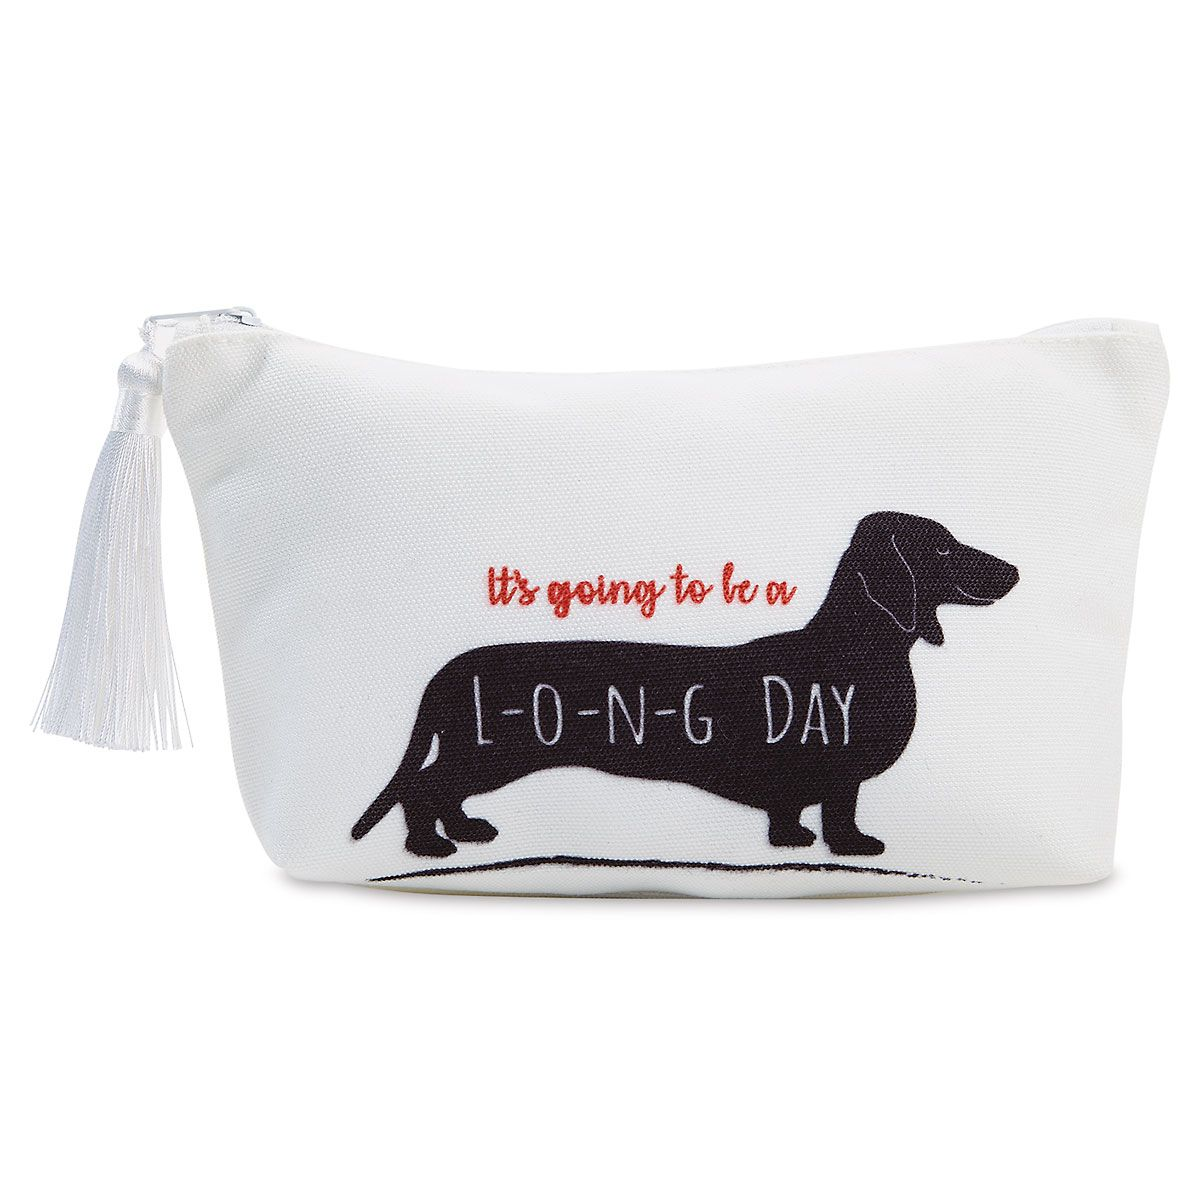 Dachshund Cosmetic Bag & Tote